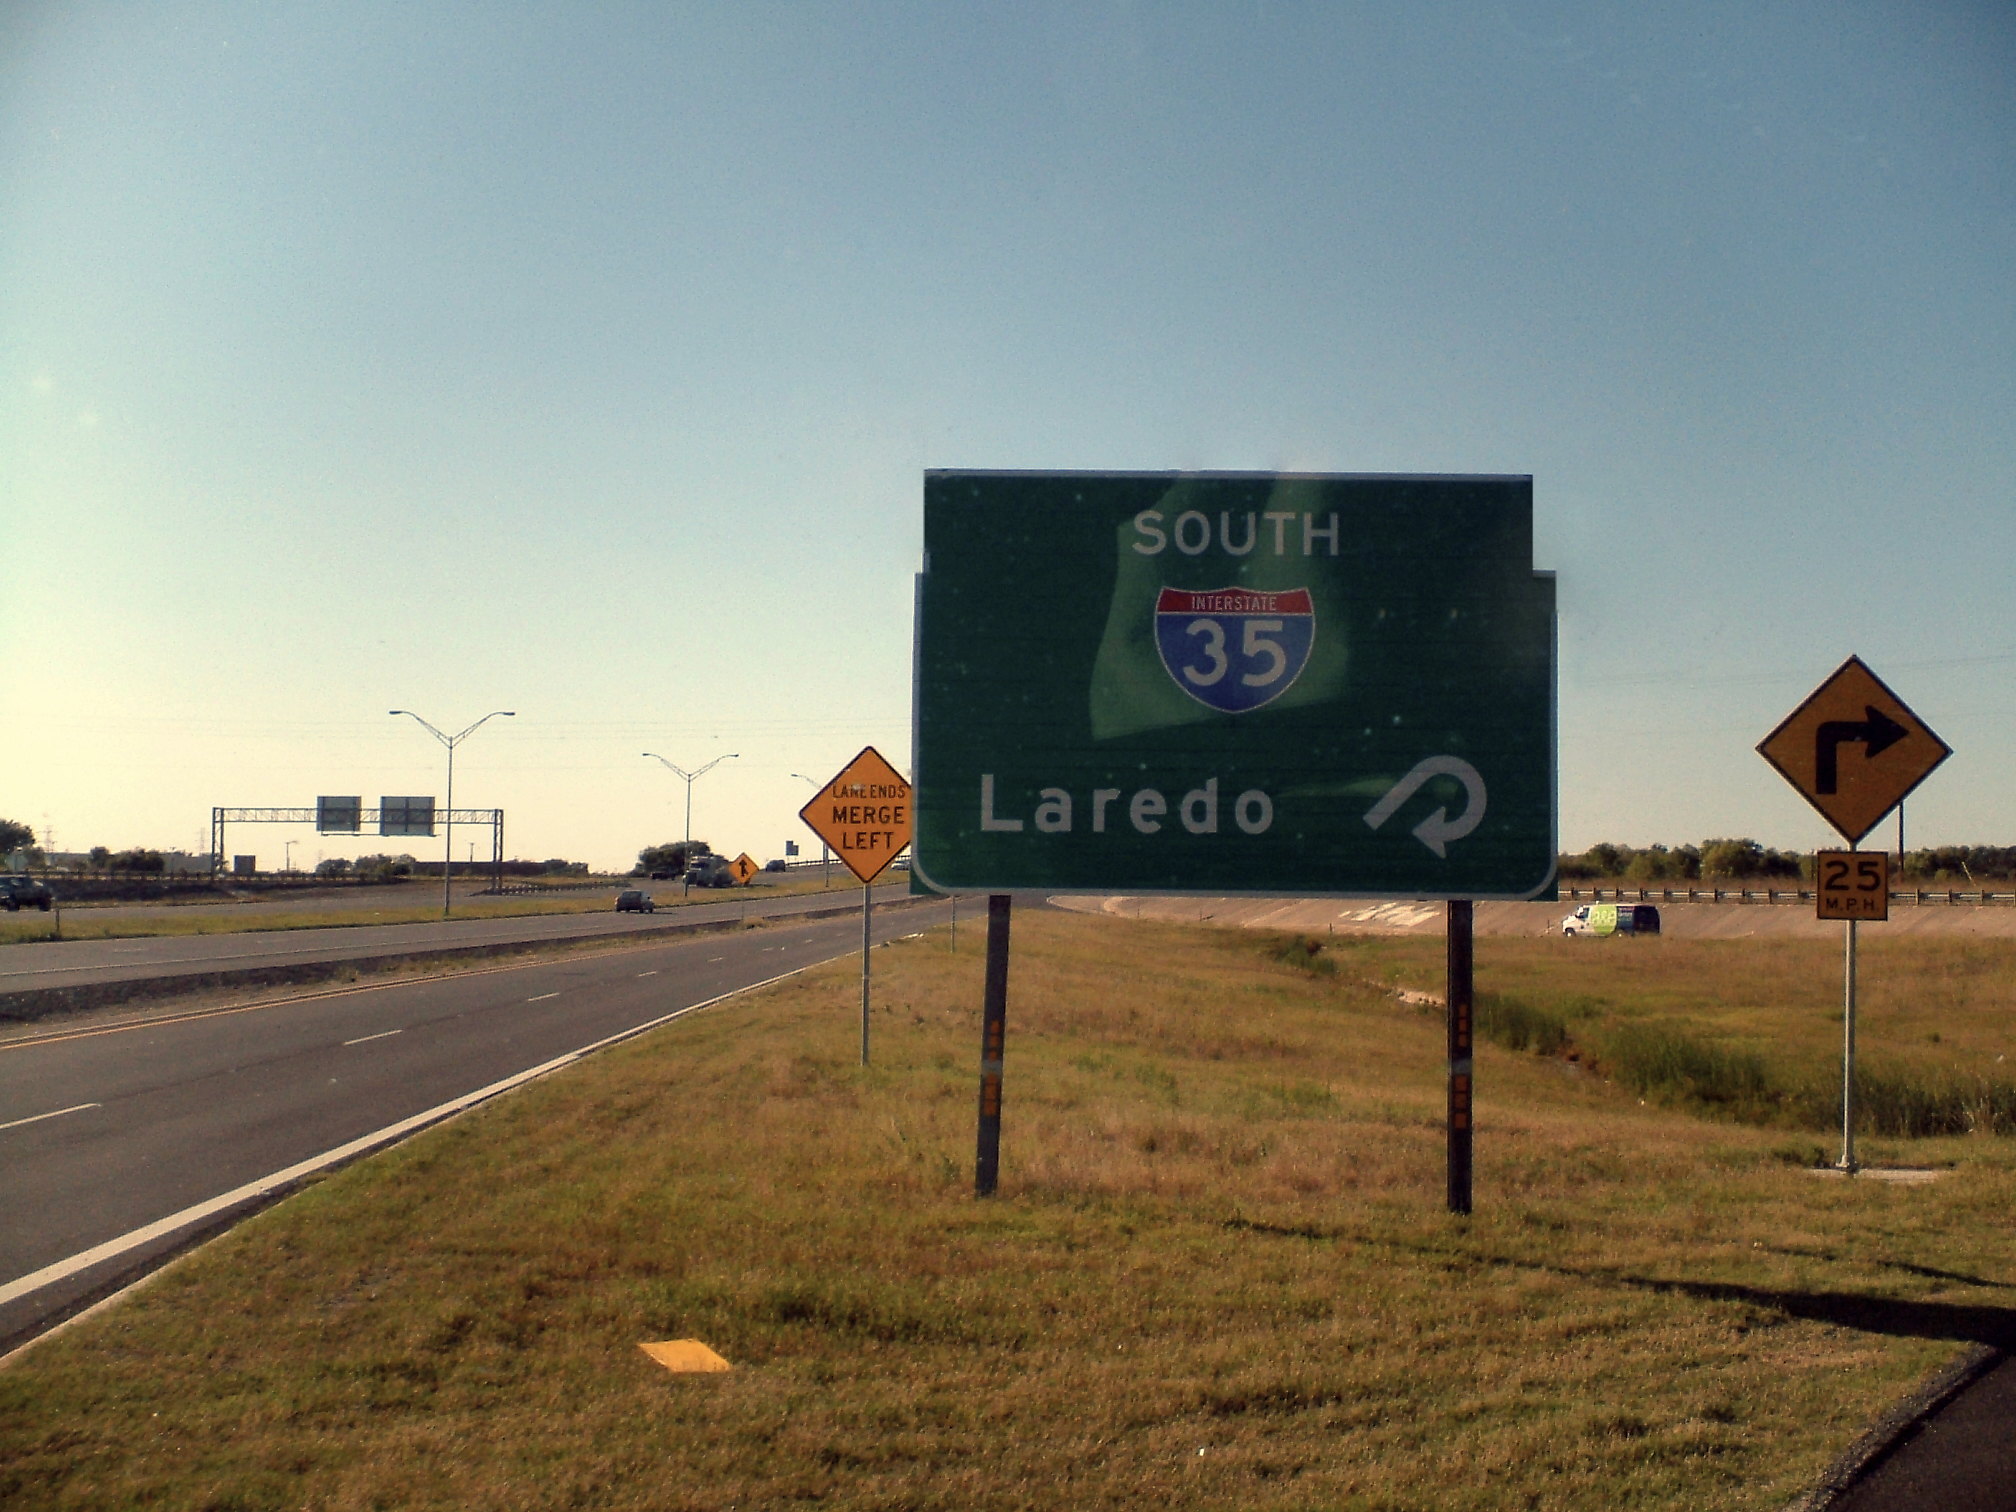 Almost there, Laredo, Texas, my common destination. Finally good food, shower and good all night sleep!